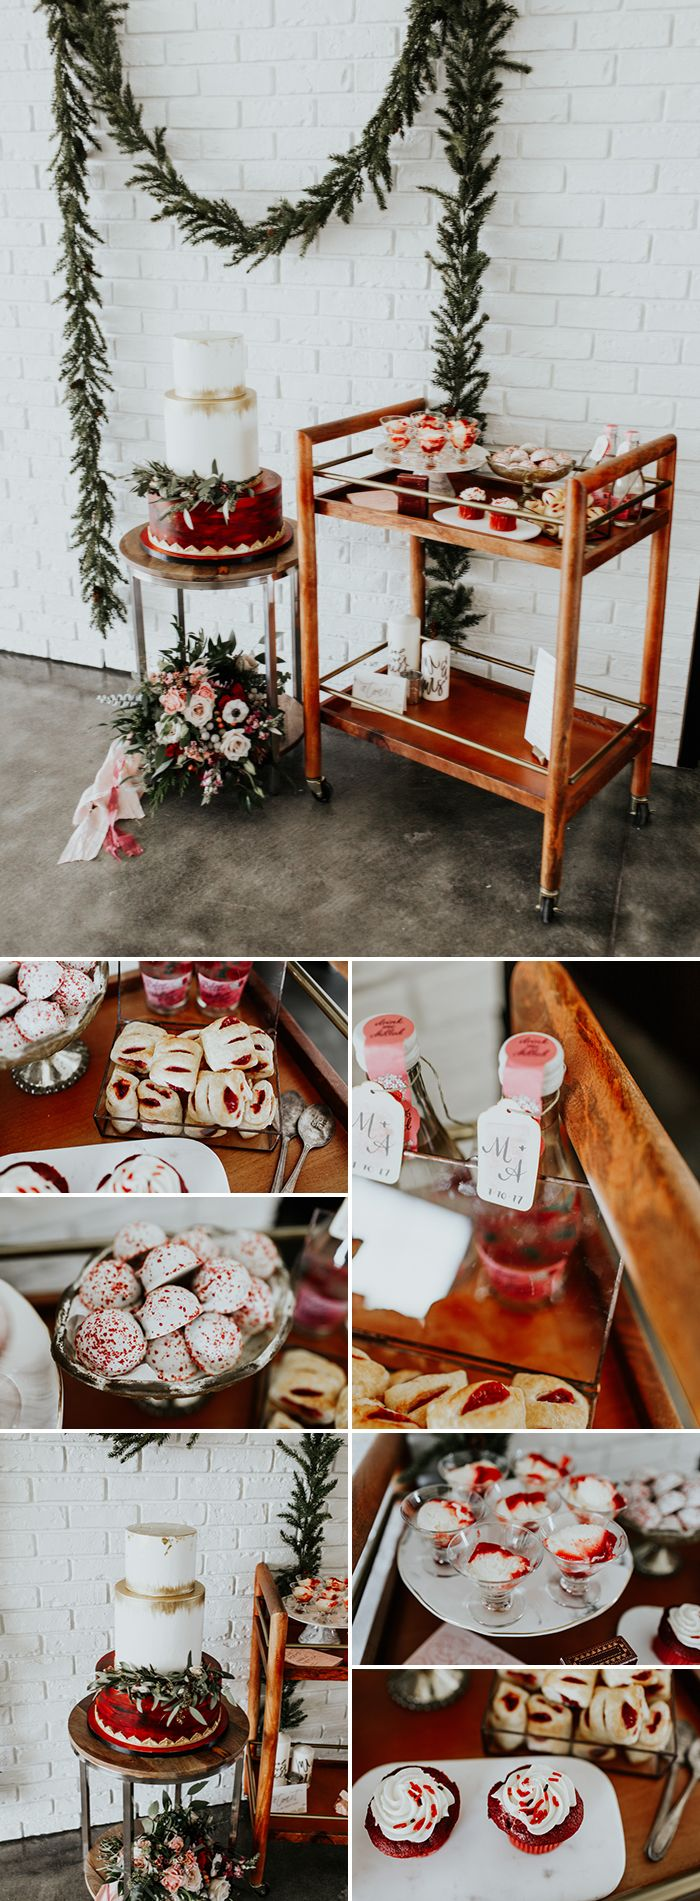 Skip the storebought sugar cookies and sweethearts- this is the right way to do a Valentine's-inspired dessert spread  | Image by Alex Lasota Photography